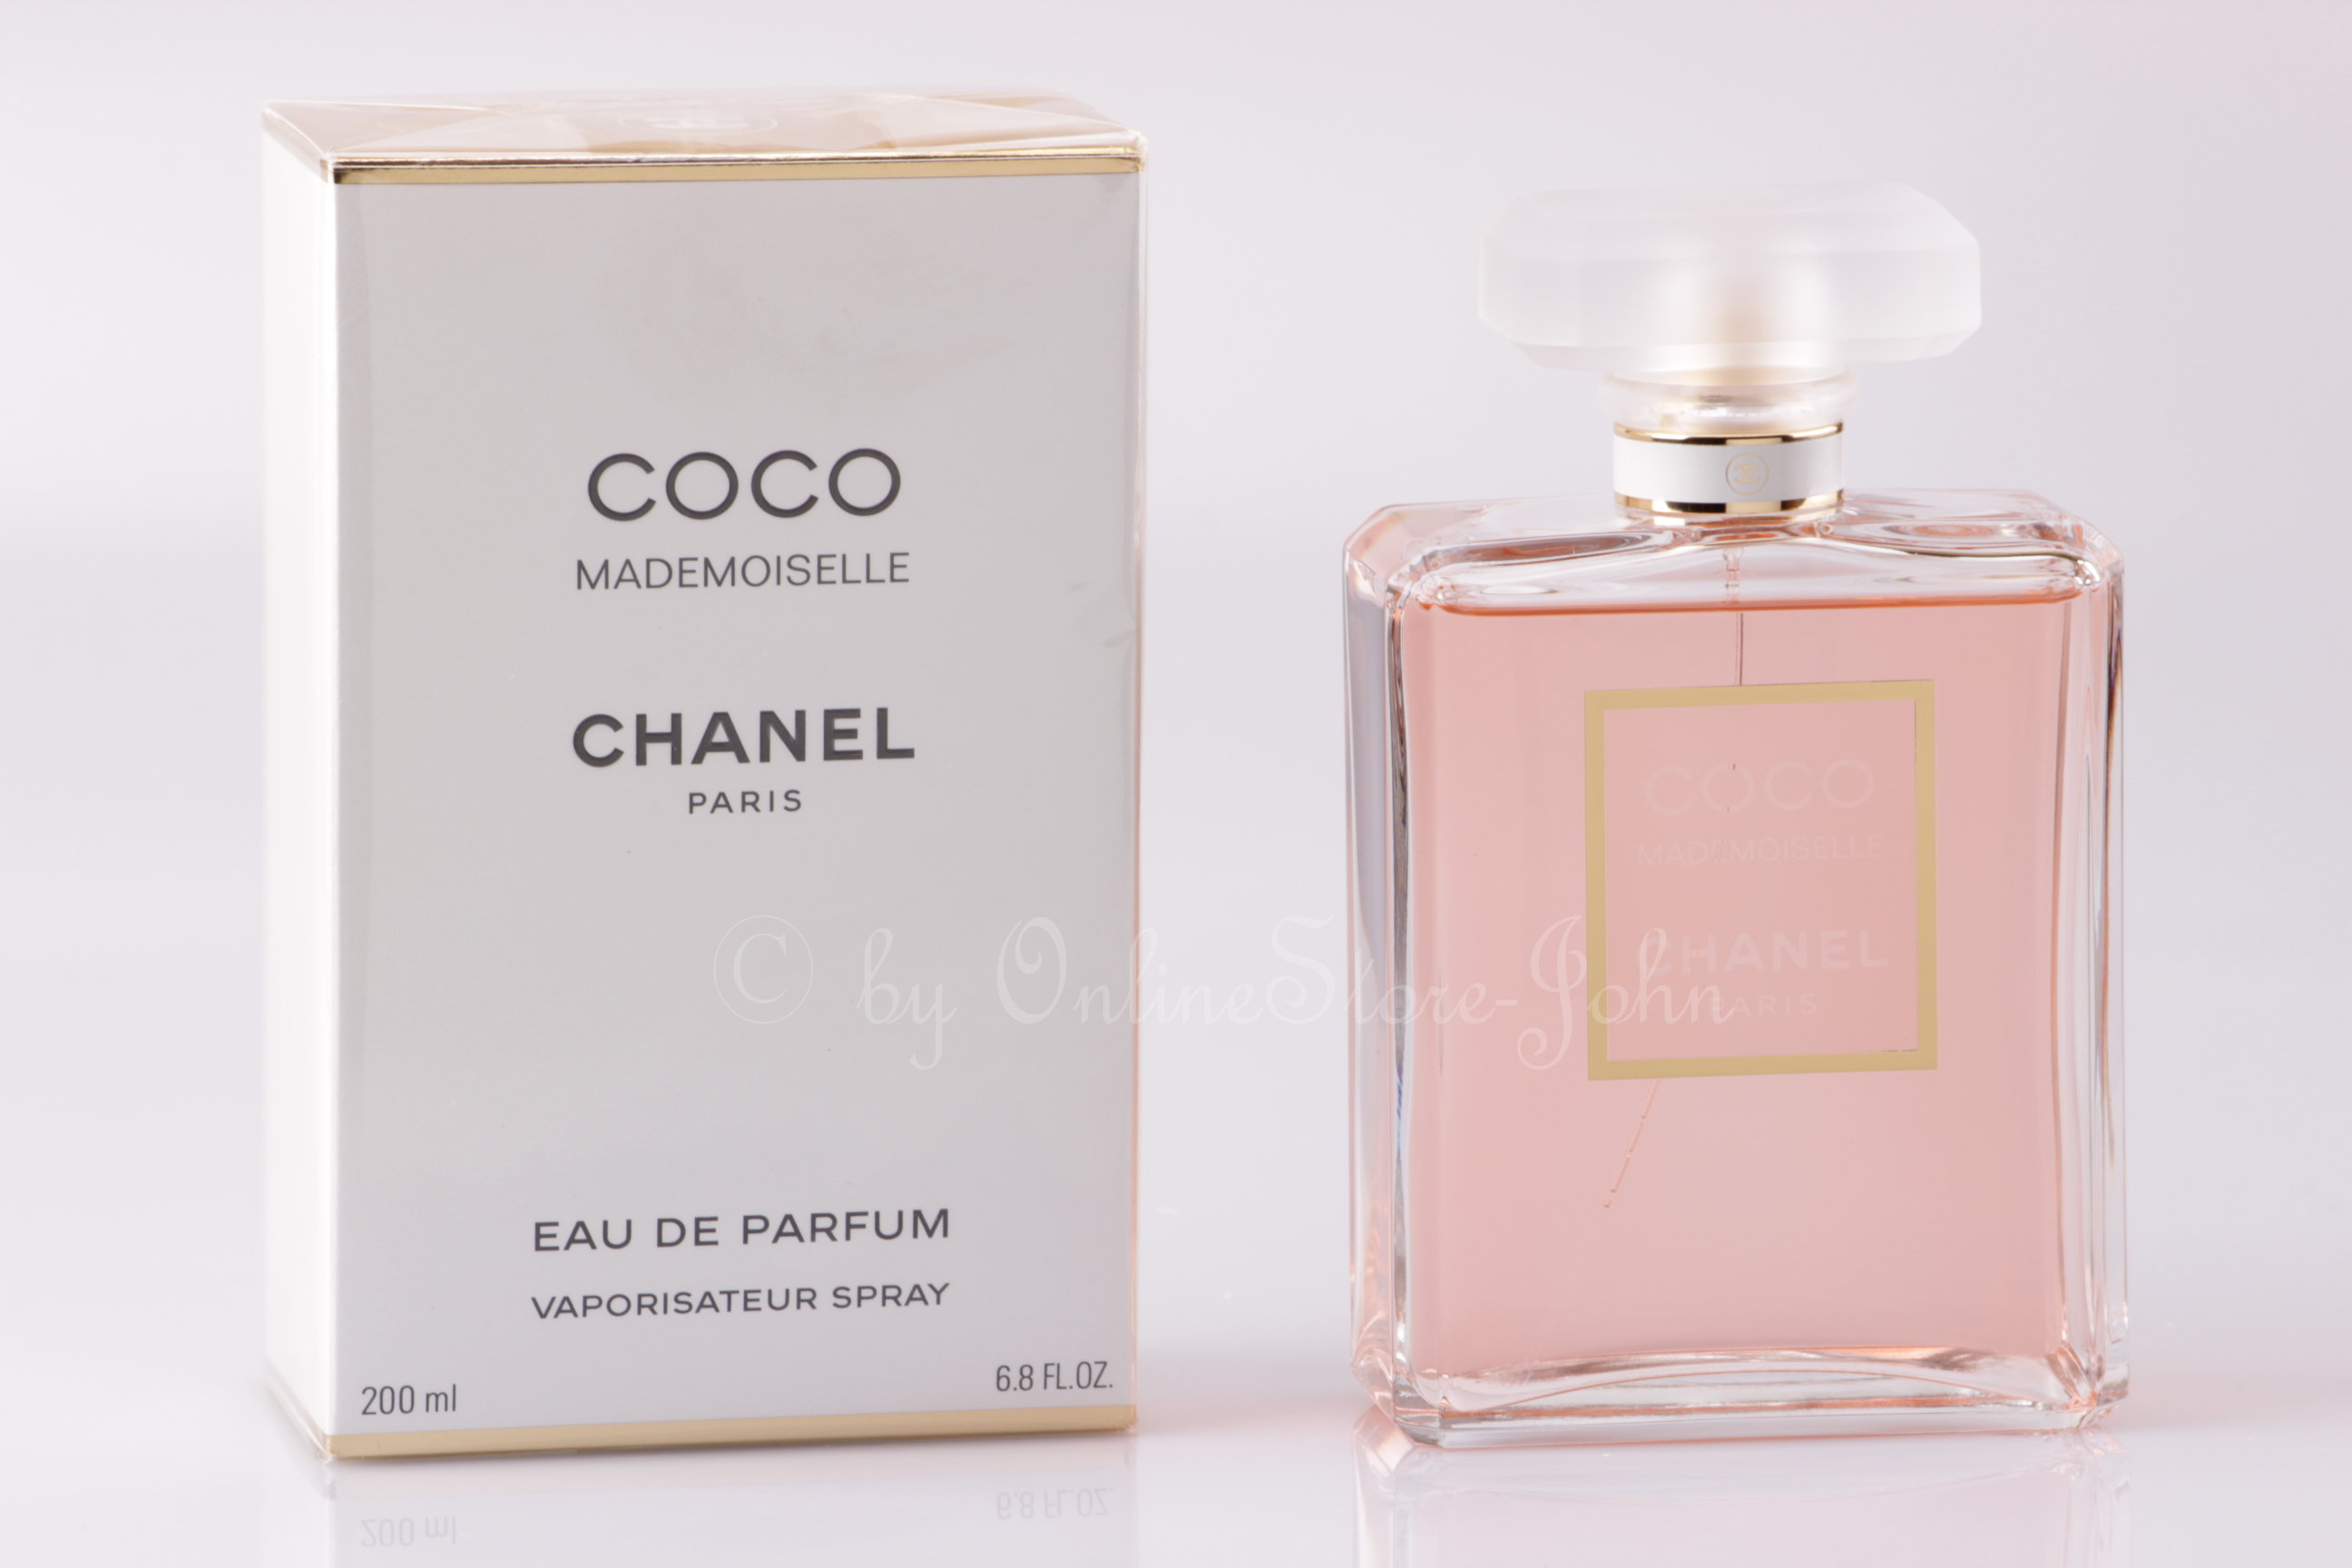 Look - Mademoiselle coco chanel perfume photo video